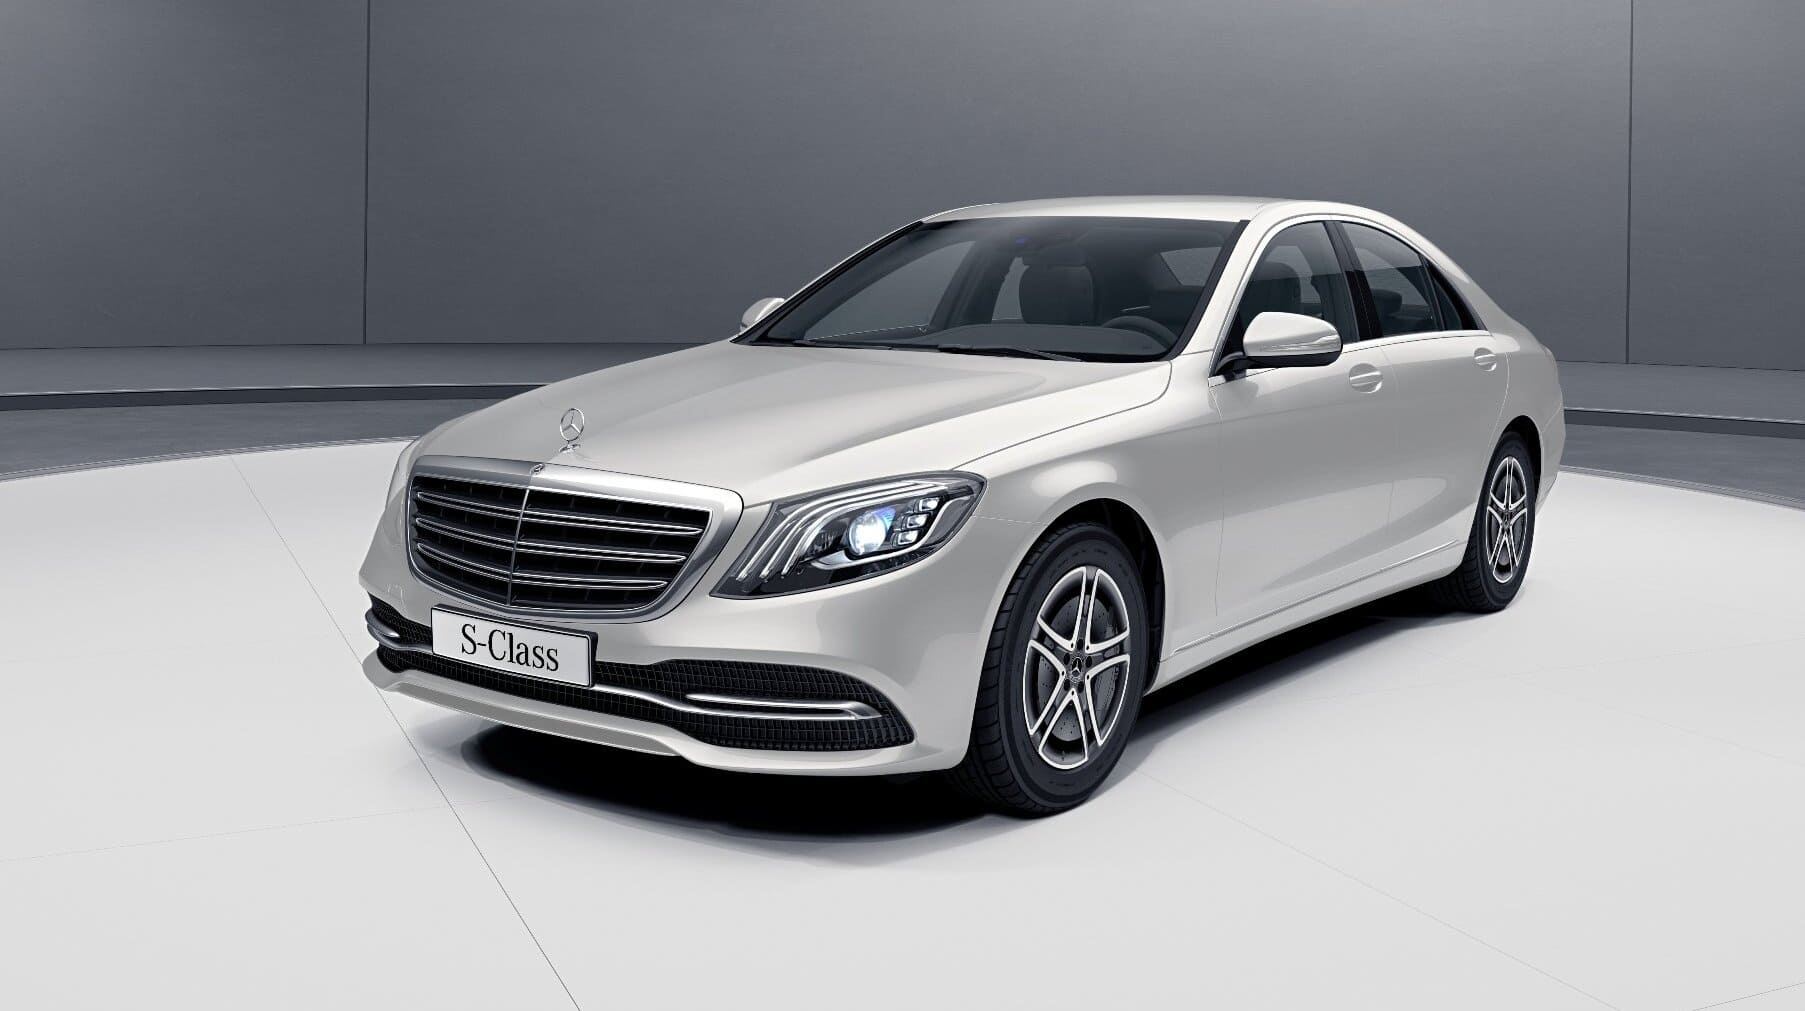 The new Mercedes-Benz S-Class sedan was launched in India on June 17